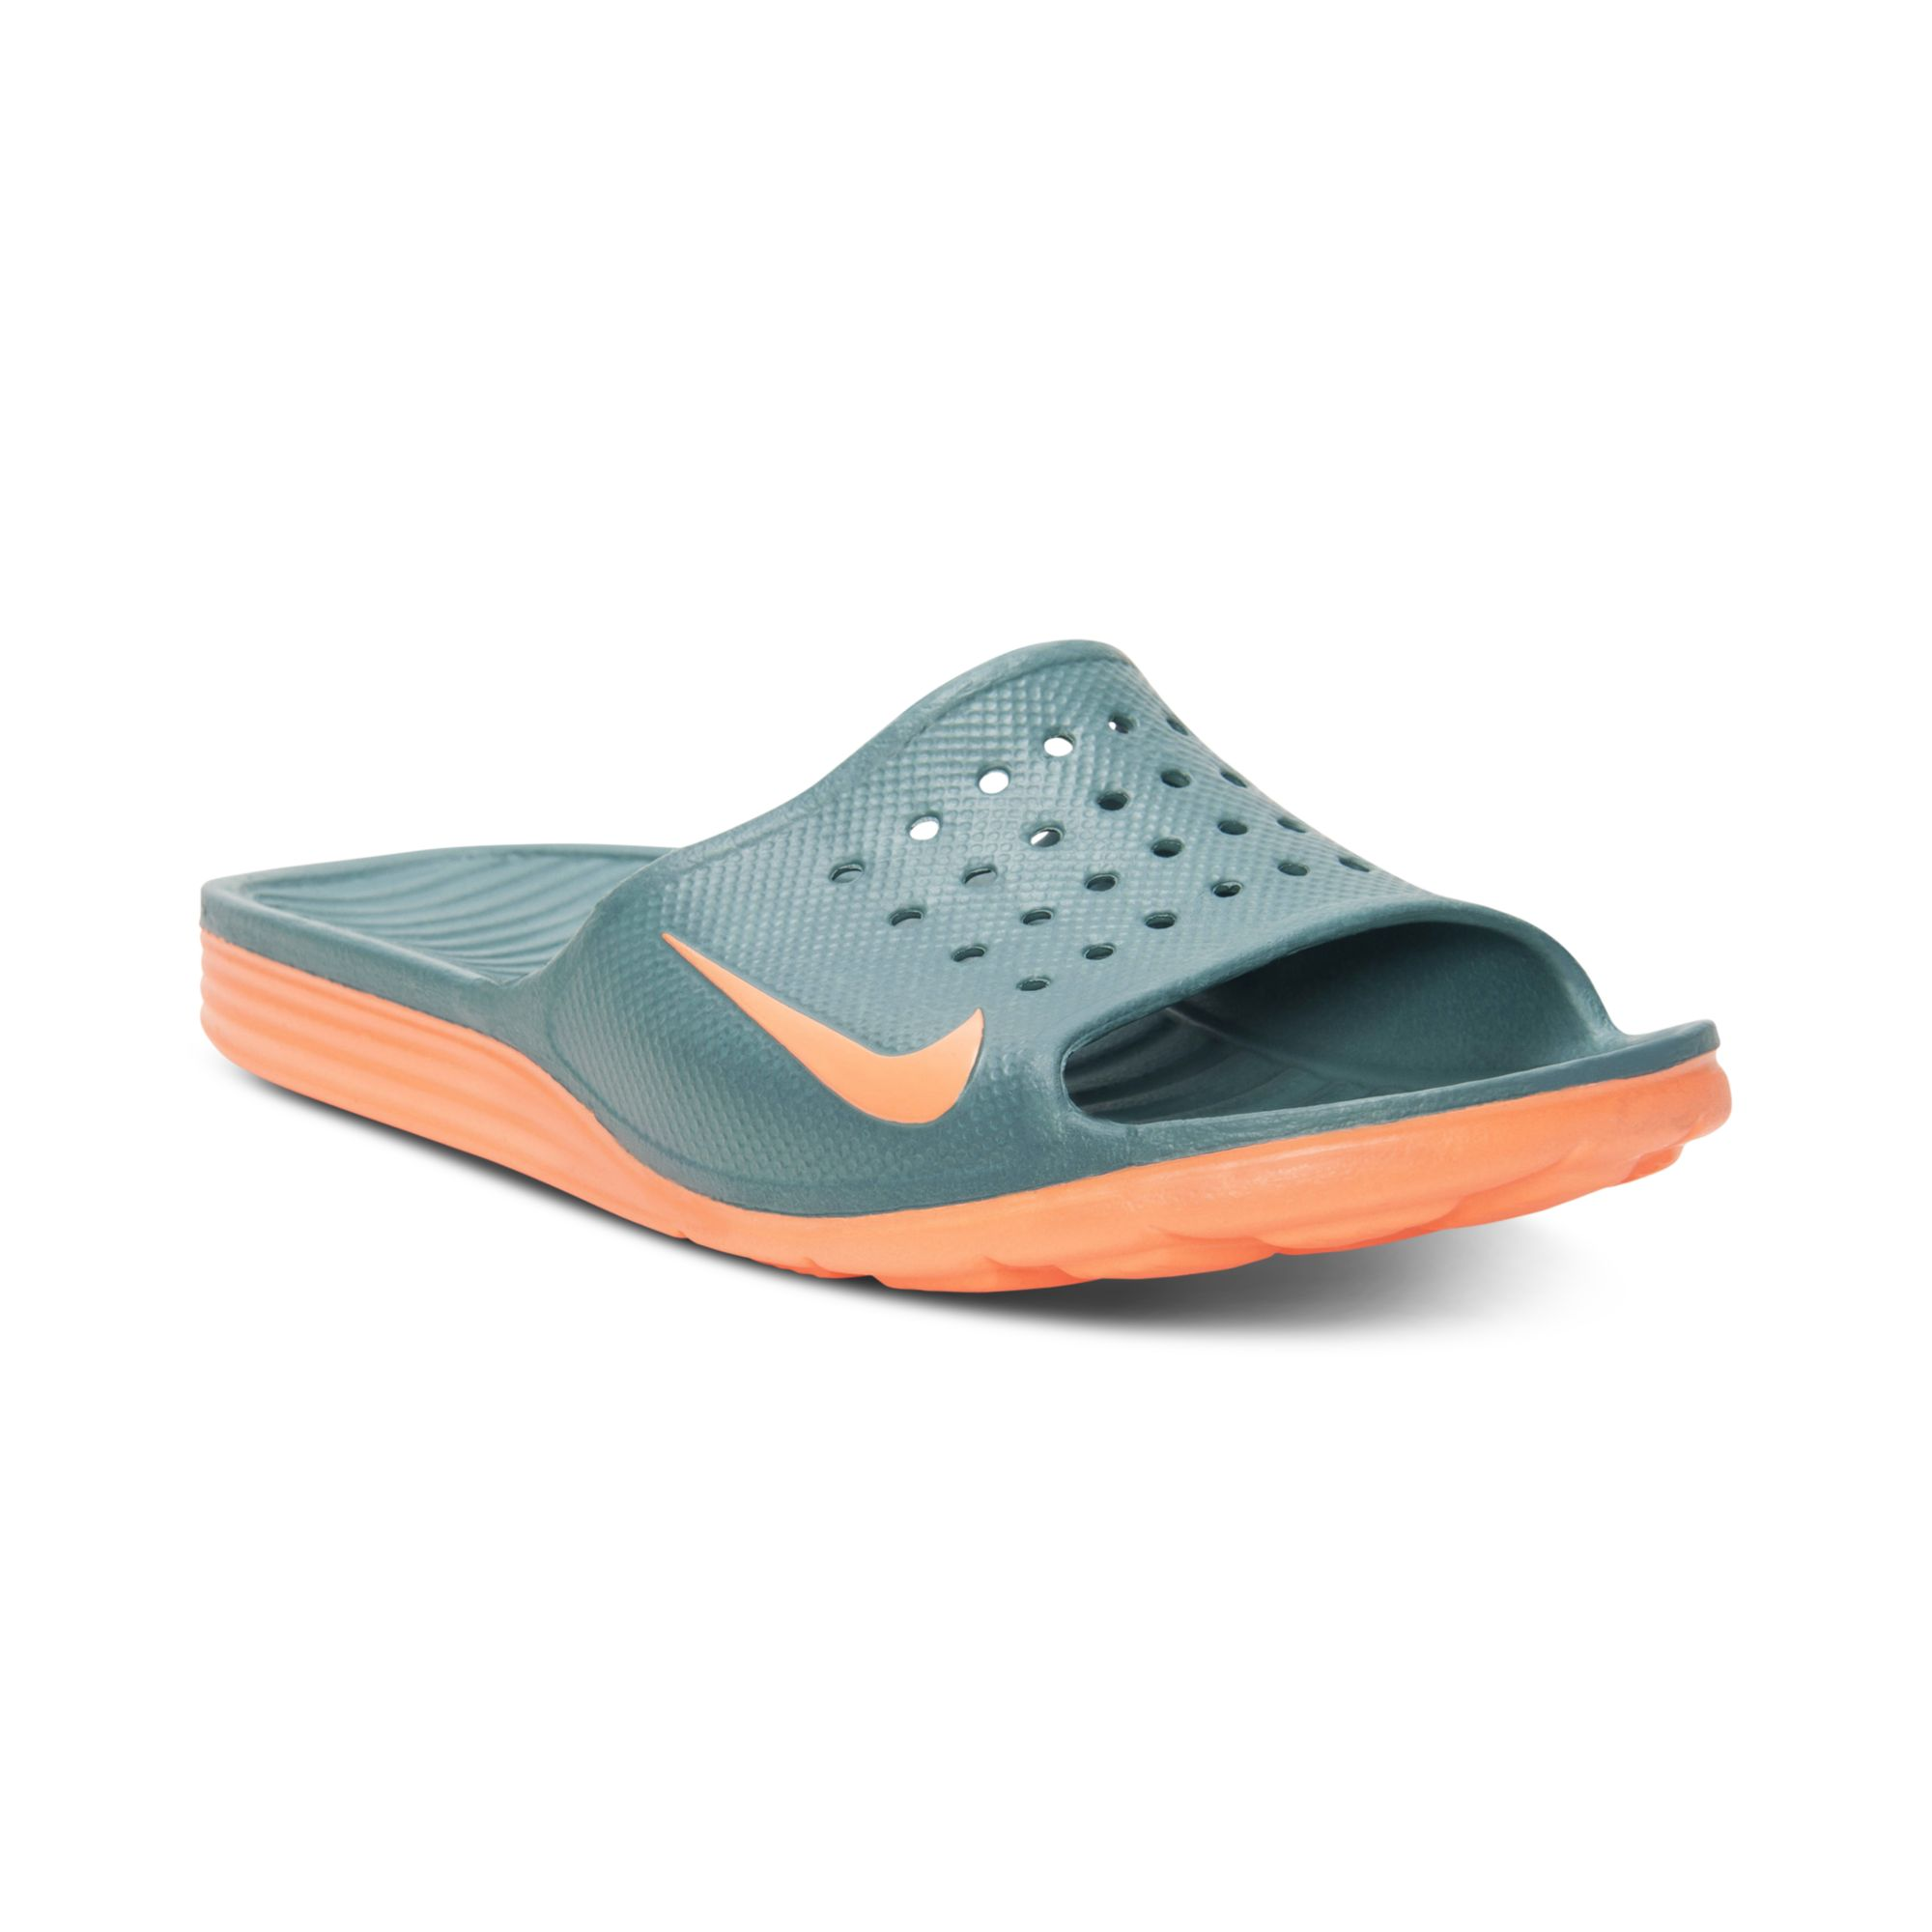 e8a4a418f200 ... where to buy lyst nike benassi solarsoft slide sandals in green for men  3c616 fcbbd